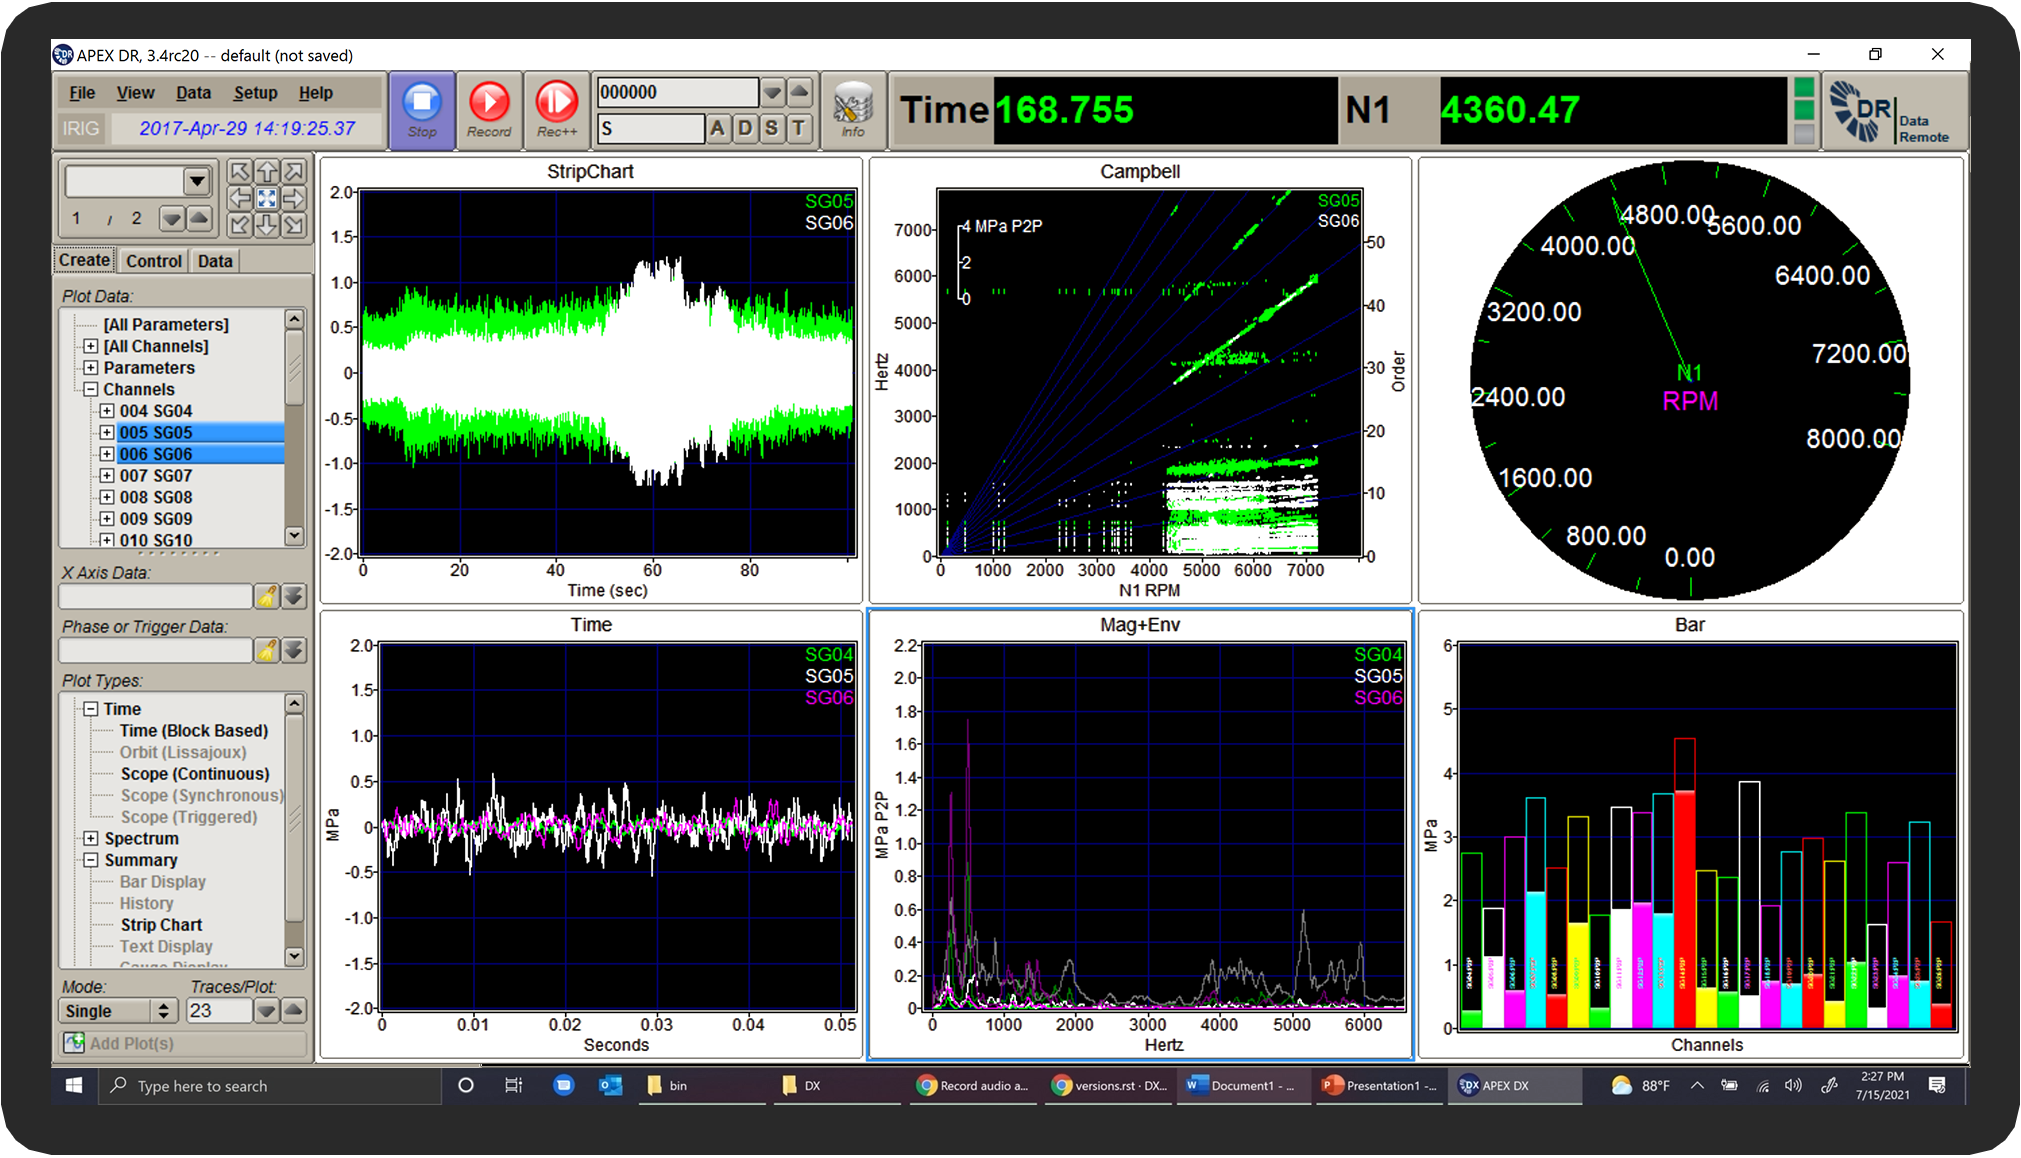 APEX DR Online Monitoring Software-Multiple Engineering Plots